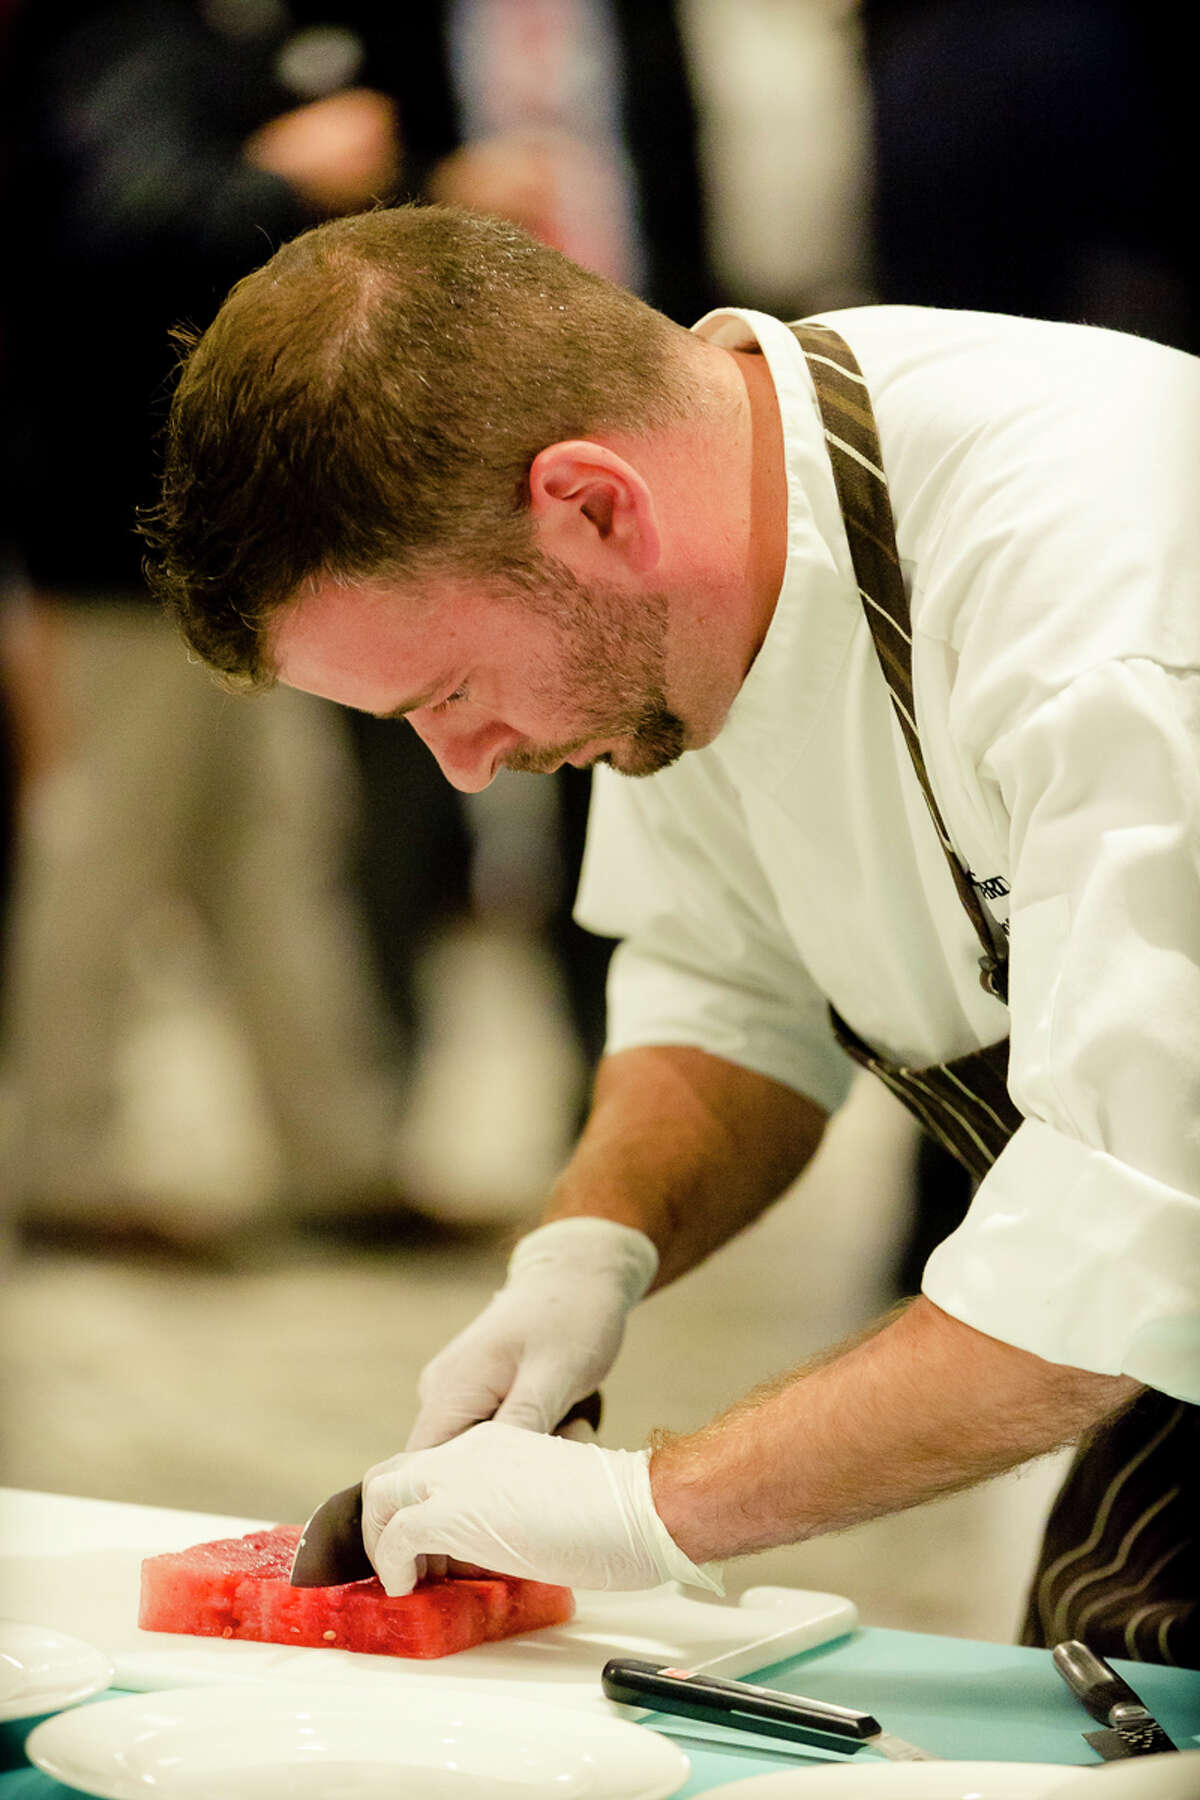 Were you Seen at the Fourth Annual Chefs' Challenge Event, hosted by the Big Brothers Big Sisters of the Capital Region, held at the Excelsior Springs at The Marriott in Saratoga Springs on Thursday, Aug. 6, 2015?